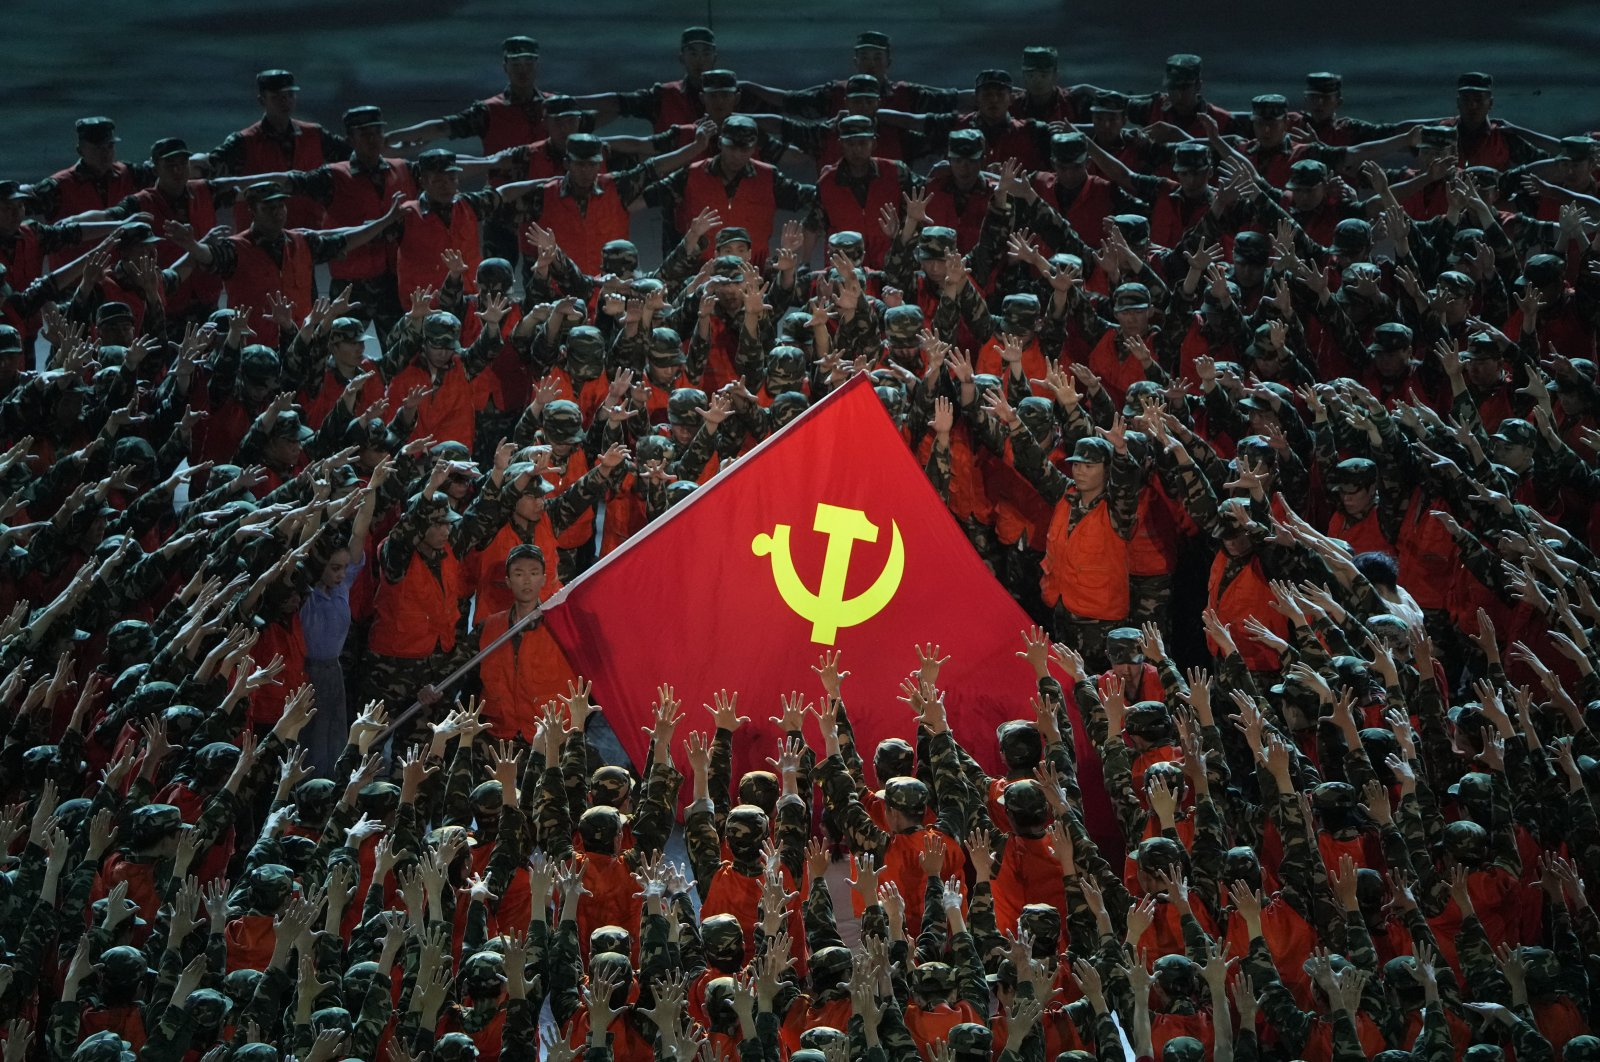 Performers in the role of rescue workers gather around a Communist Party flag during a gala show ahead of the 100th anniversary of the founding of the Chinese Communist Party in Beijing, China, June 28, 2021. (AP Photo)